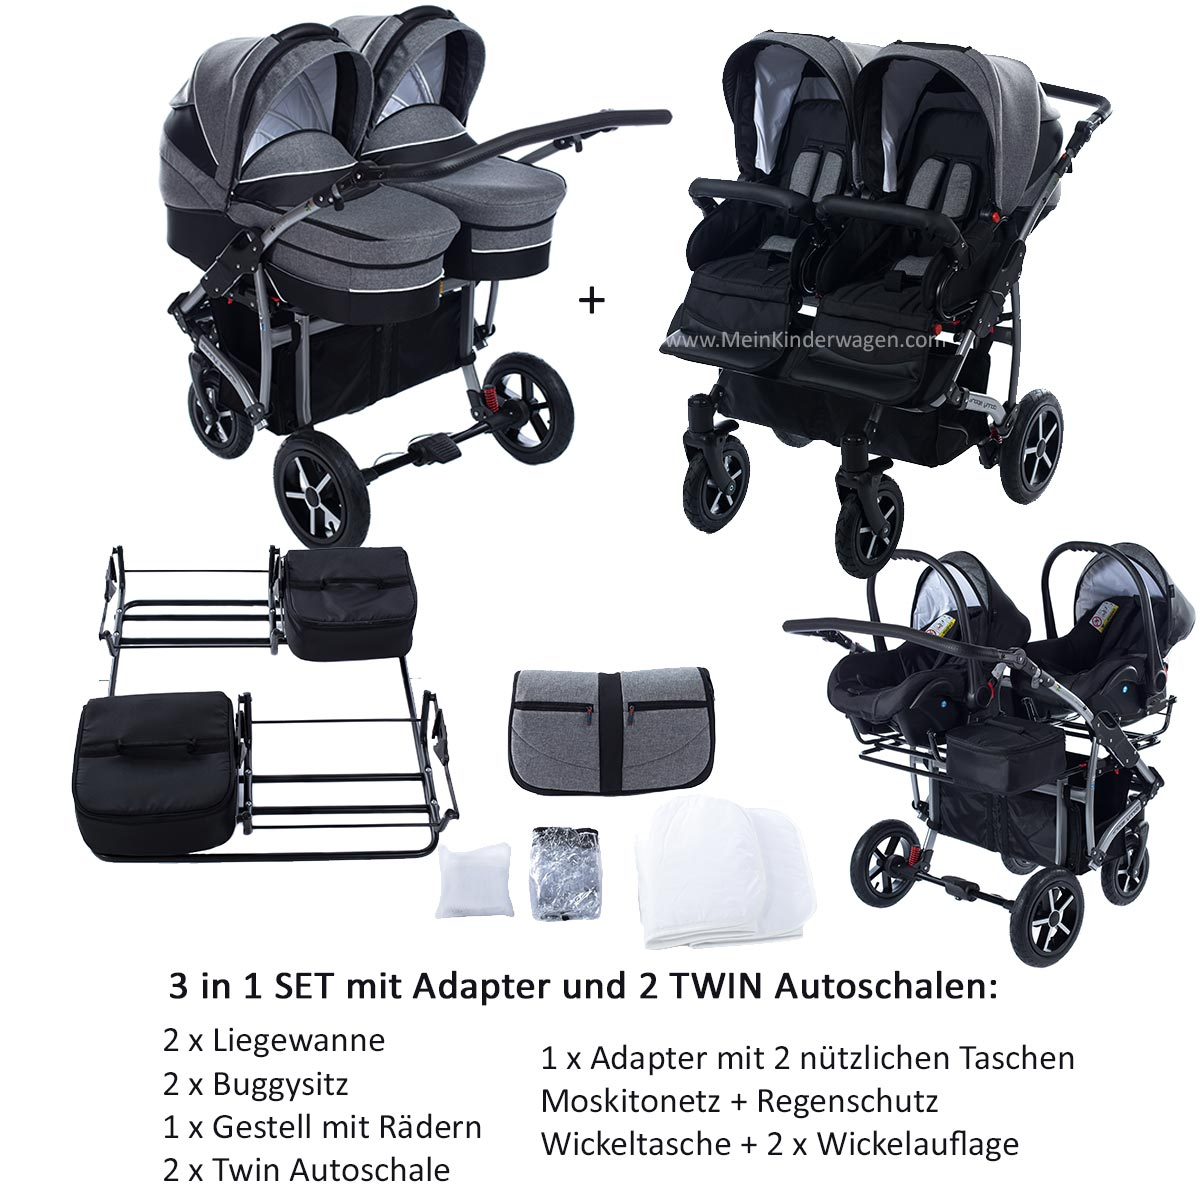 Twin Zwillingswagen 2 in 1 Set mit Adapter und 2 Autoschalen